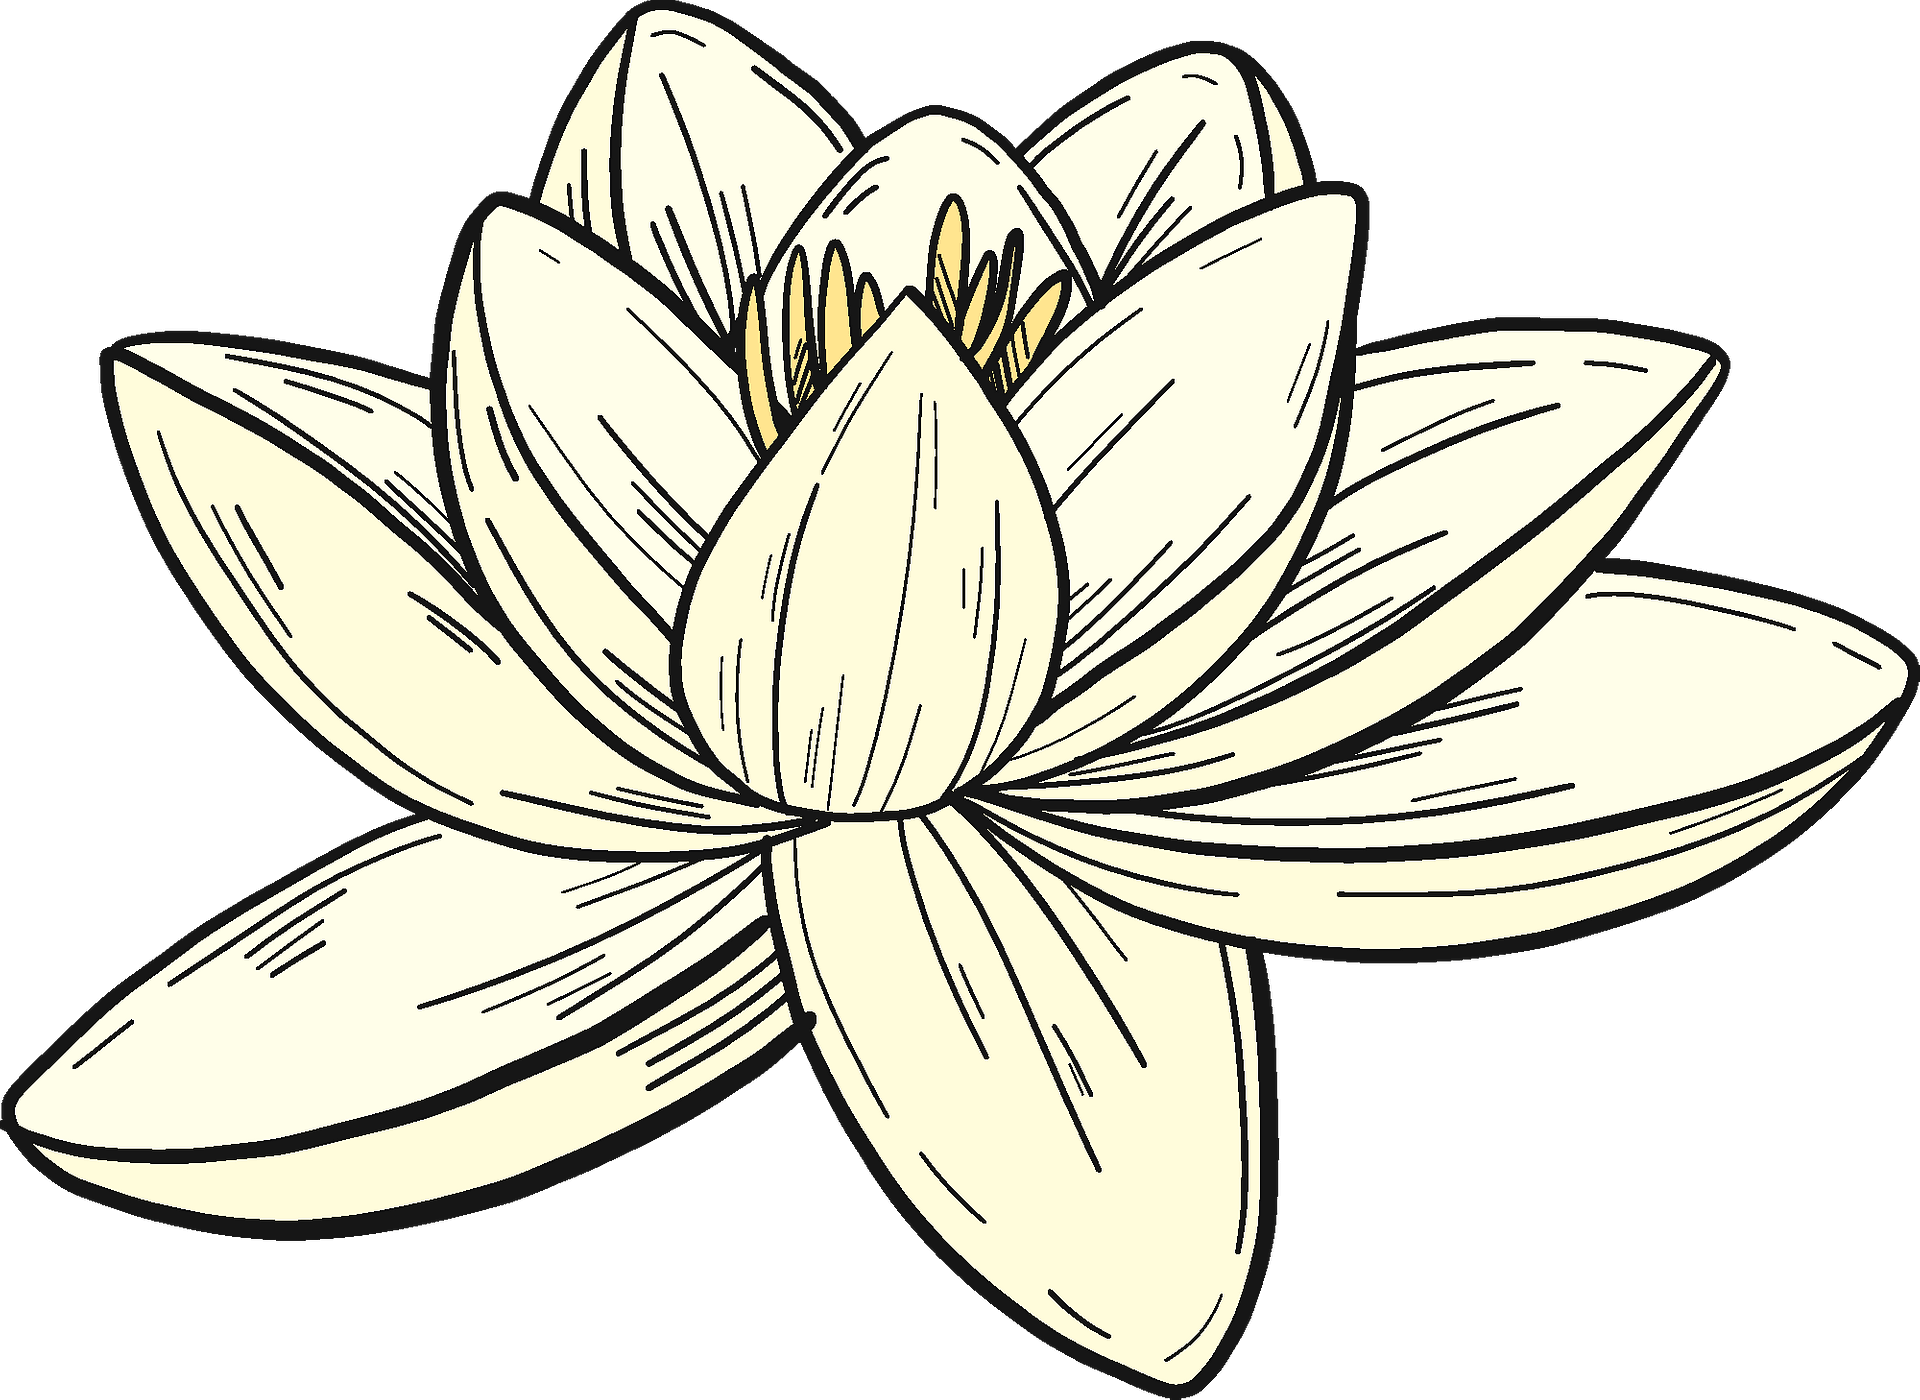 Lily Flower Cartoon clipart - Flower, Lily, Plant, transparent clip art